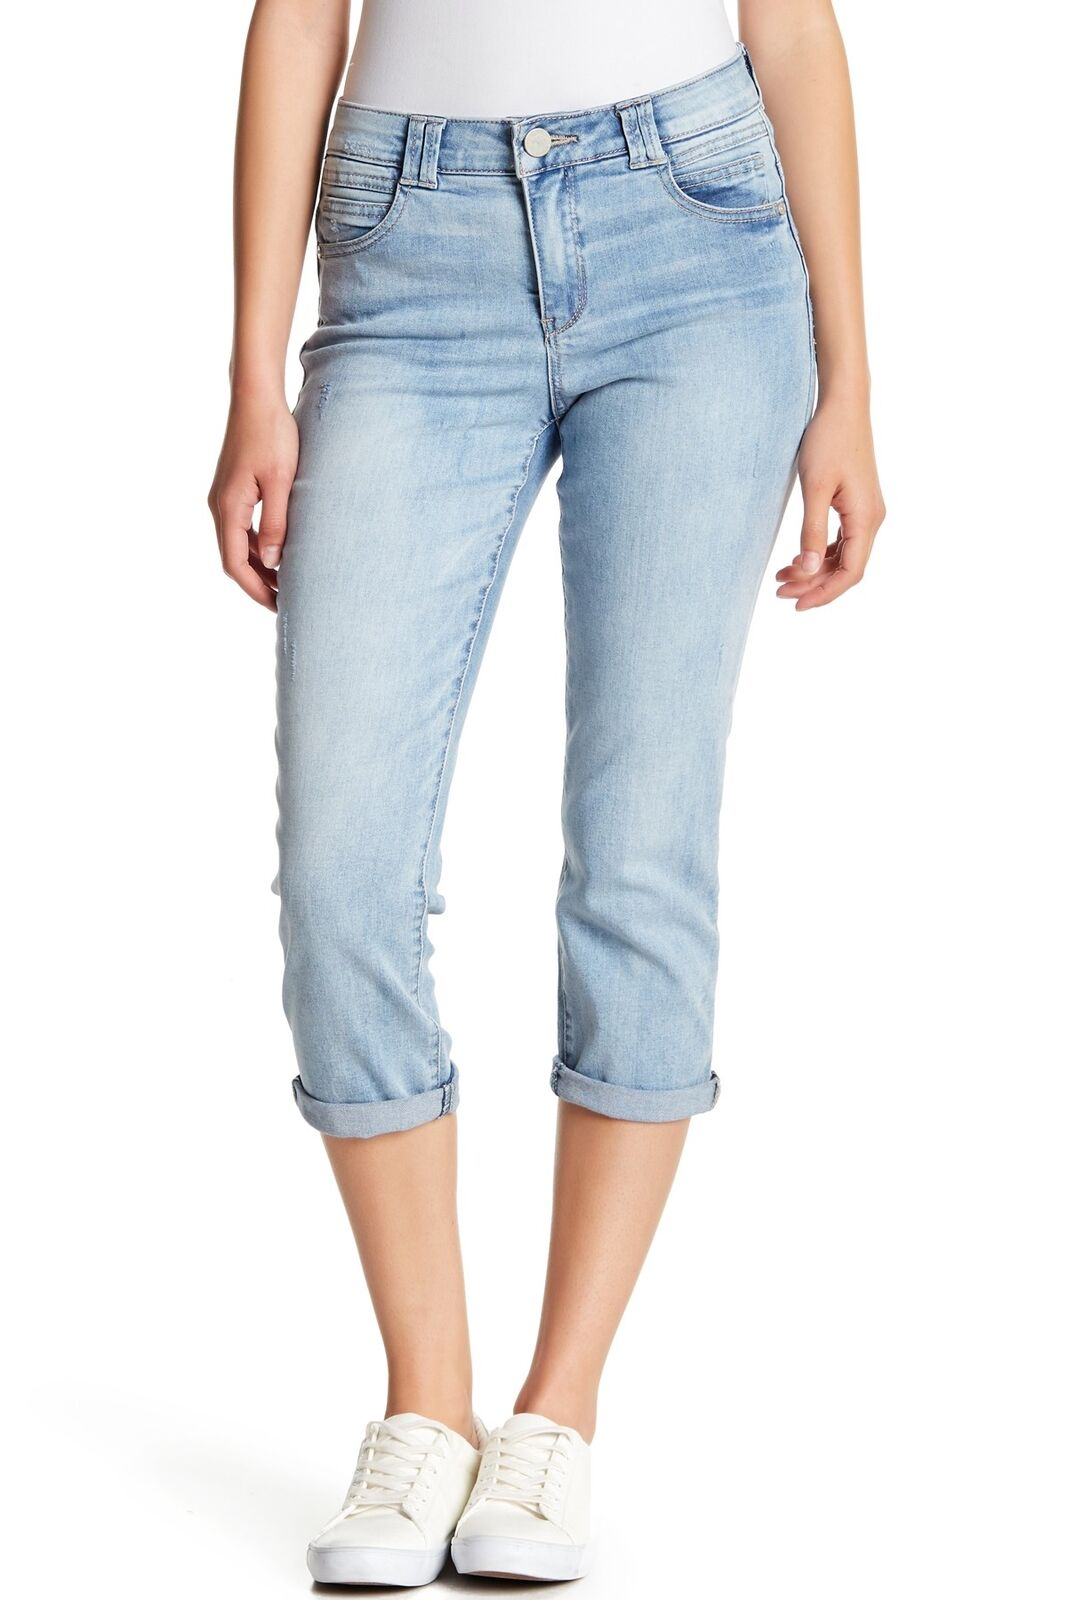 DEMOCRACY   High Rise Cropped Petite Jeans   Light bluee   10P